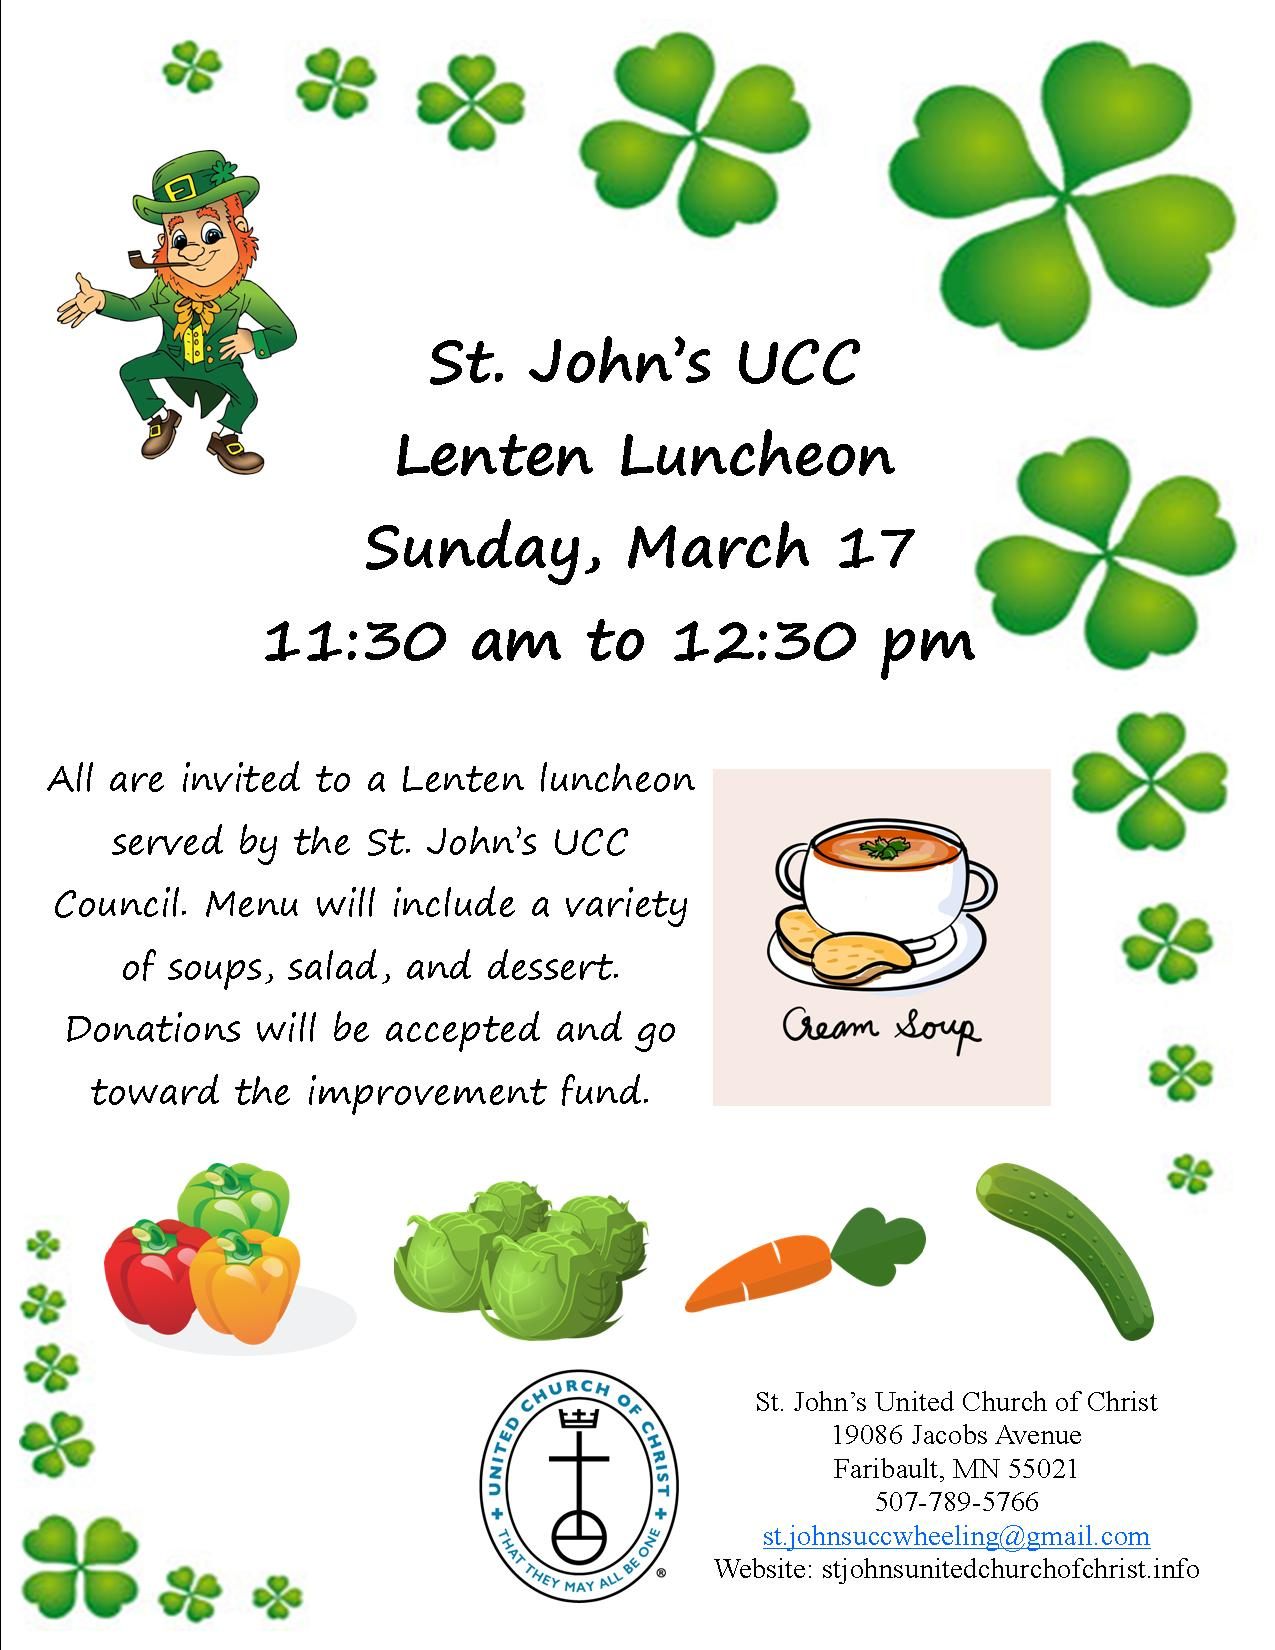 Lenten Luncheon